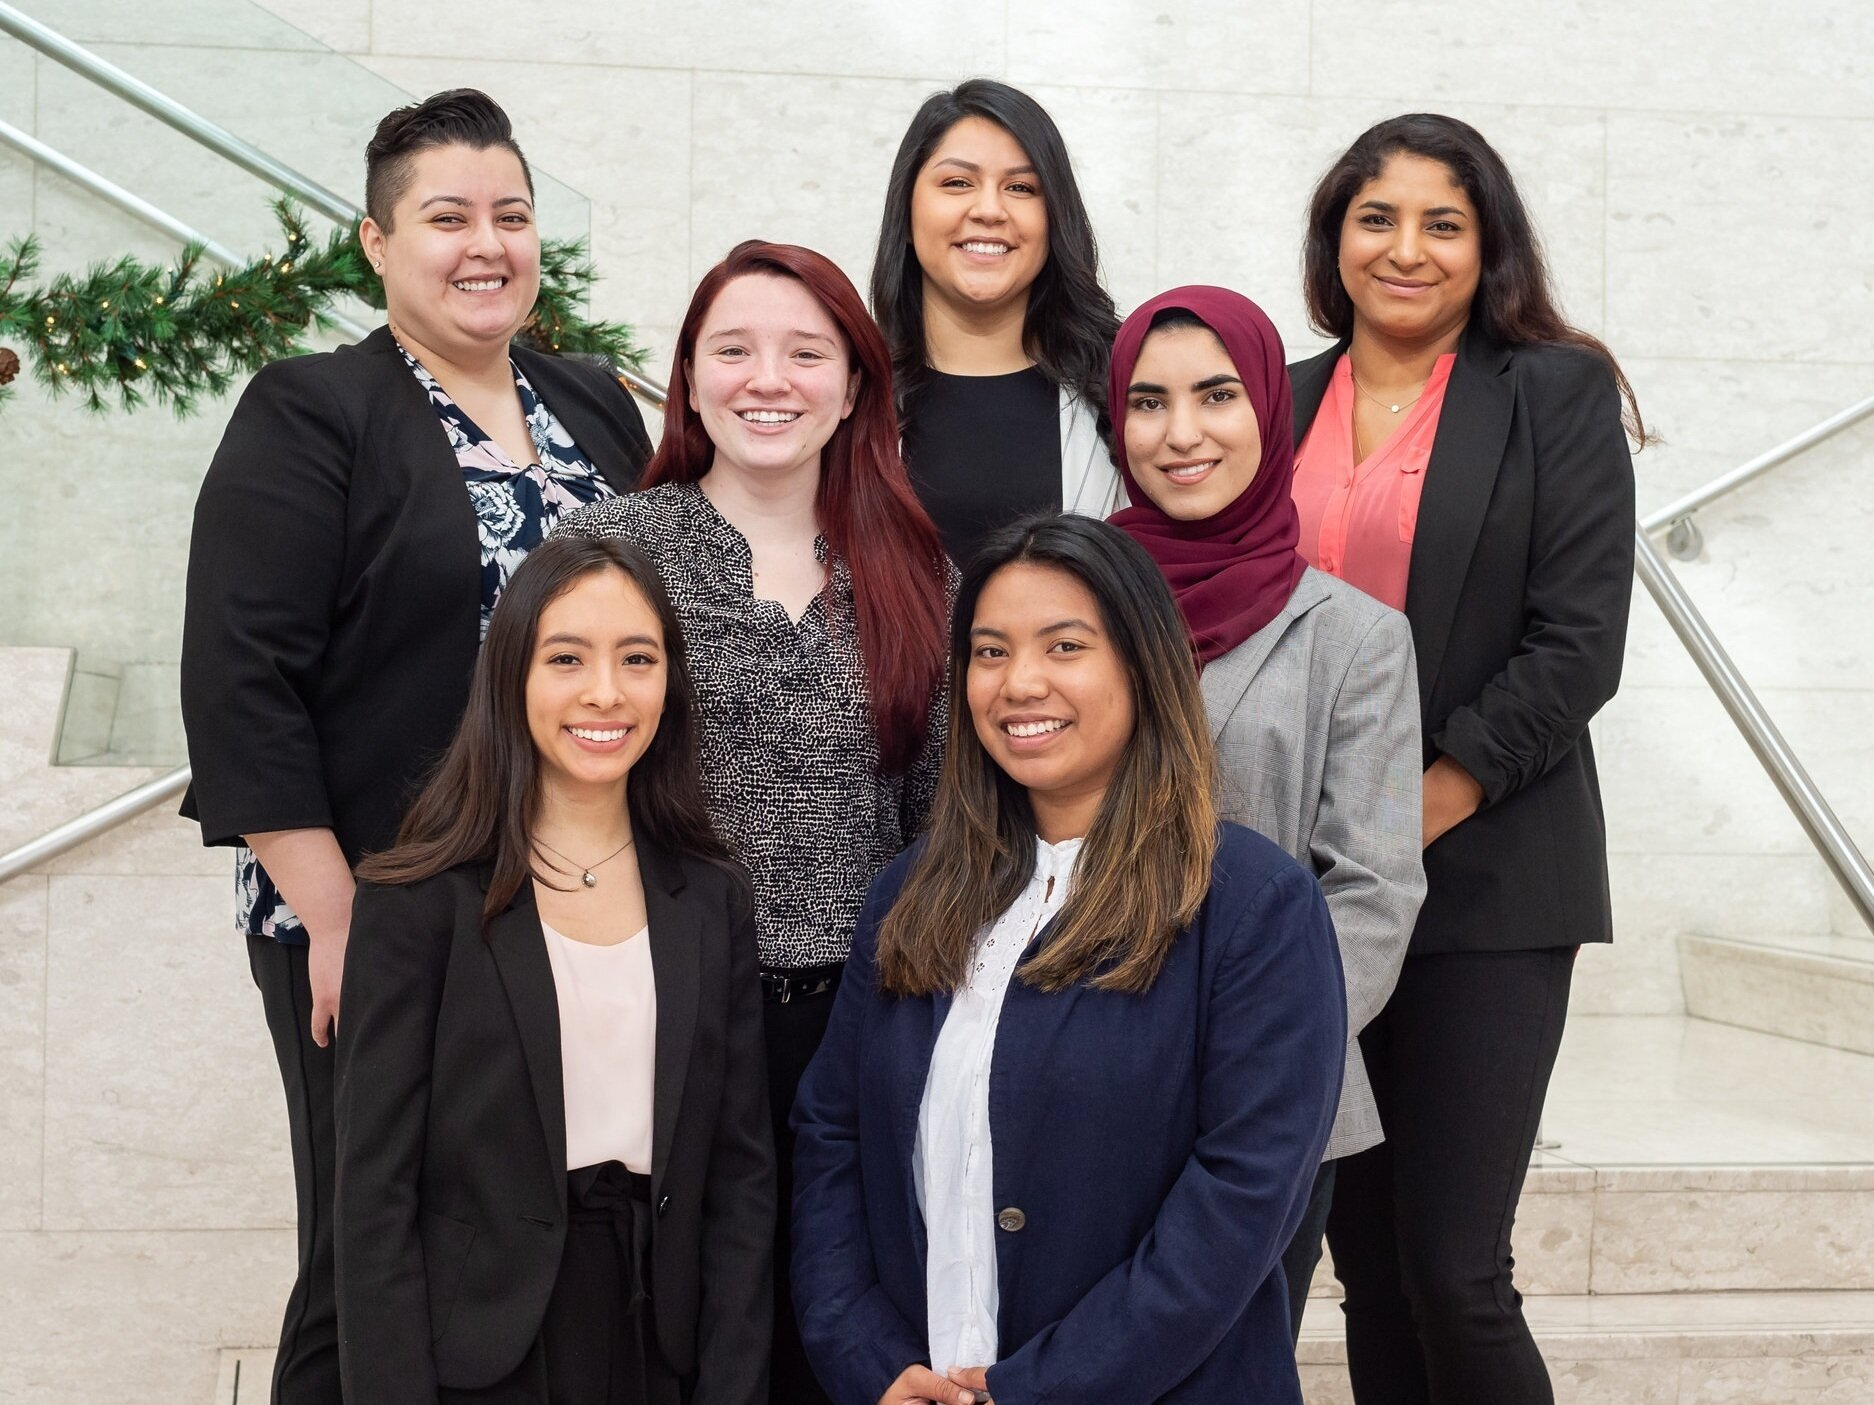 TEAM - Pacific SWIB was founded by seven women from the Eberhardt School of Business.